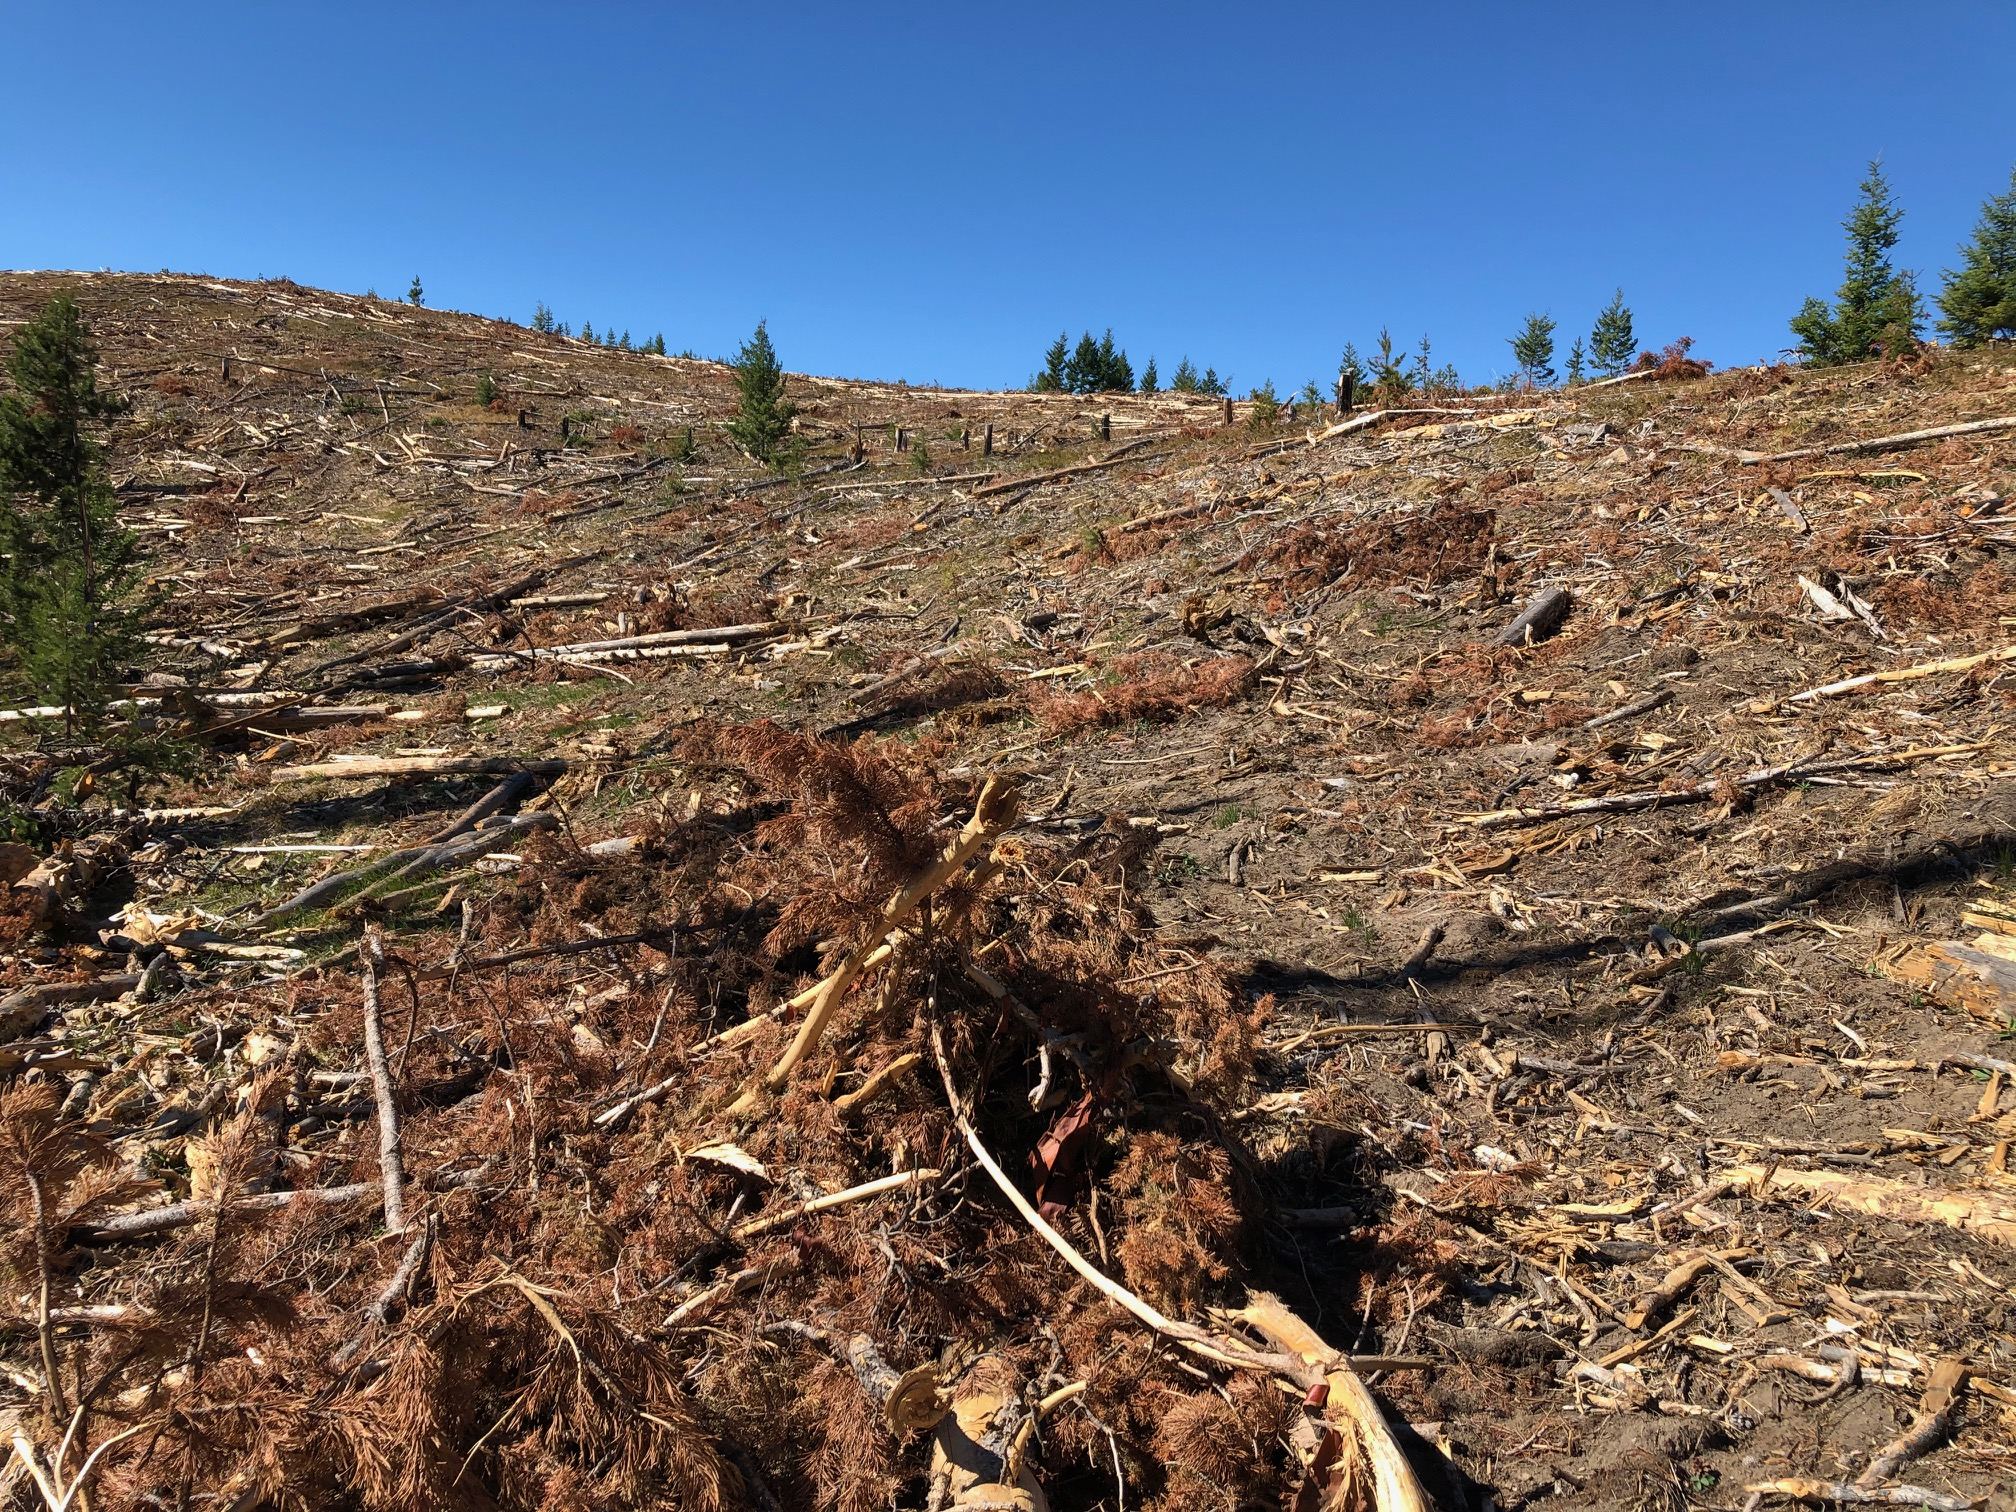 Big, bad forest clear cutting continues